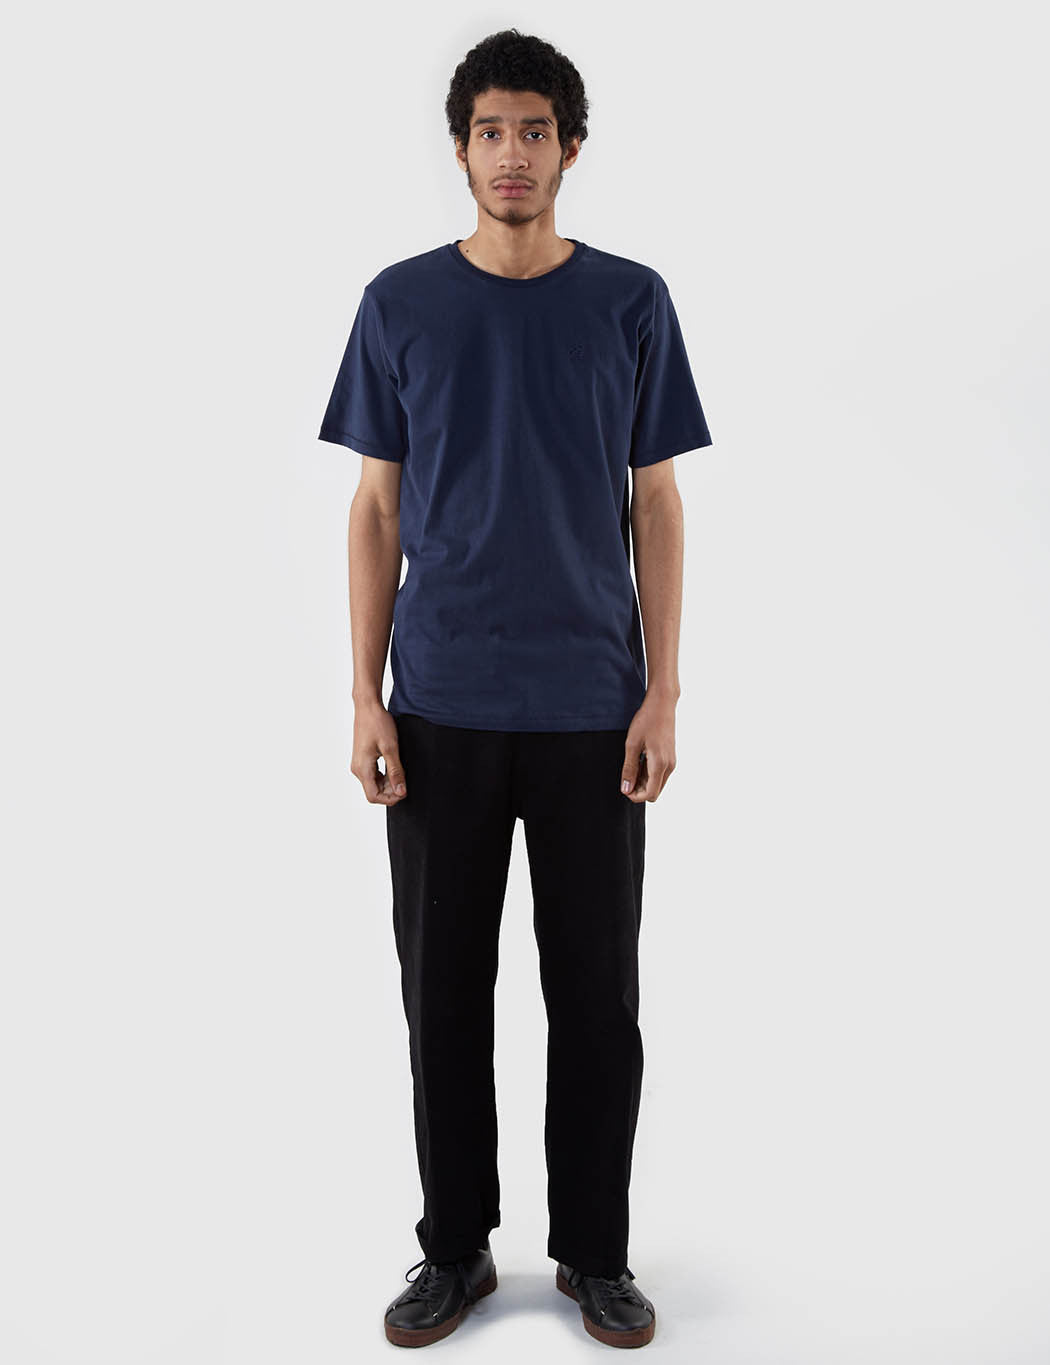 Soulland Whatever T-Shirt - Navy